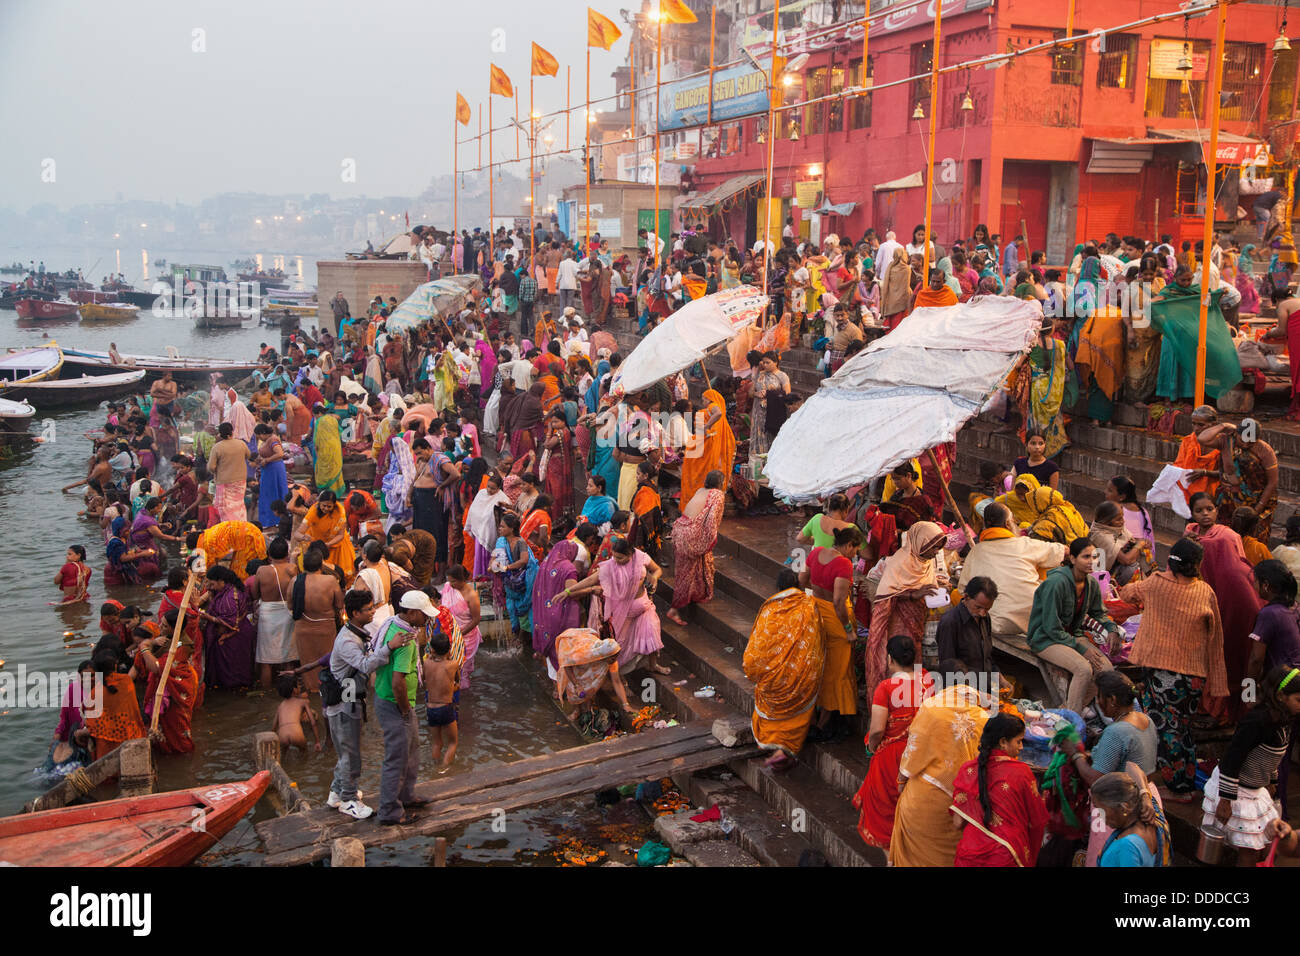 Indian Hindu pilgrims and devotees bathe in Ganges in the morning of one of Diwali festival days in Varanasi, India. - Stock Image